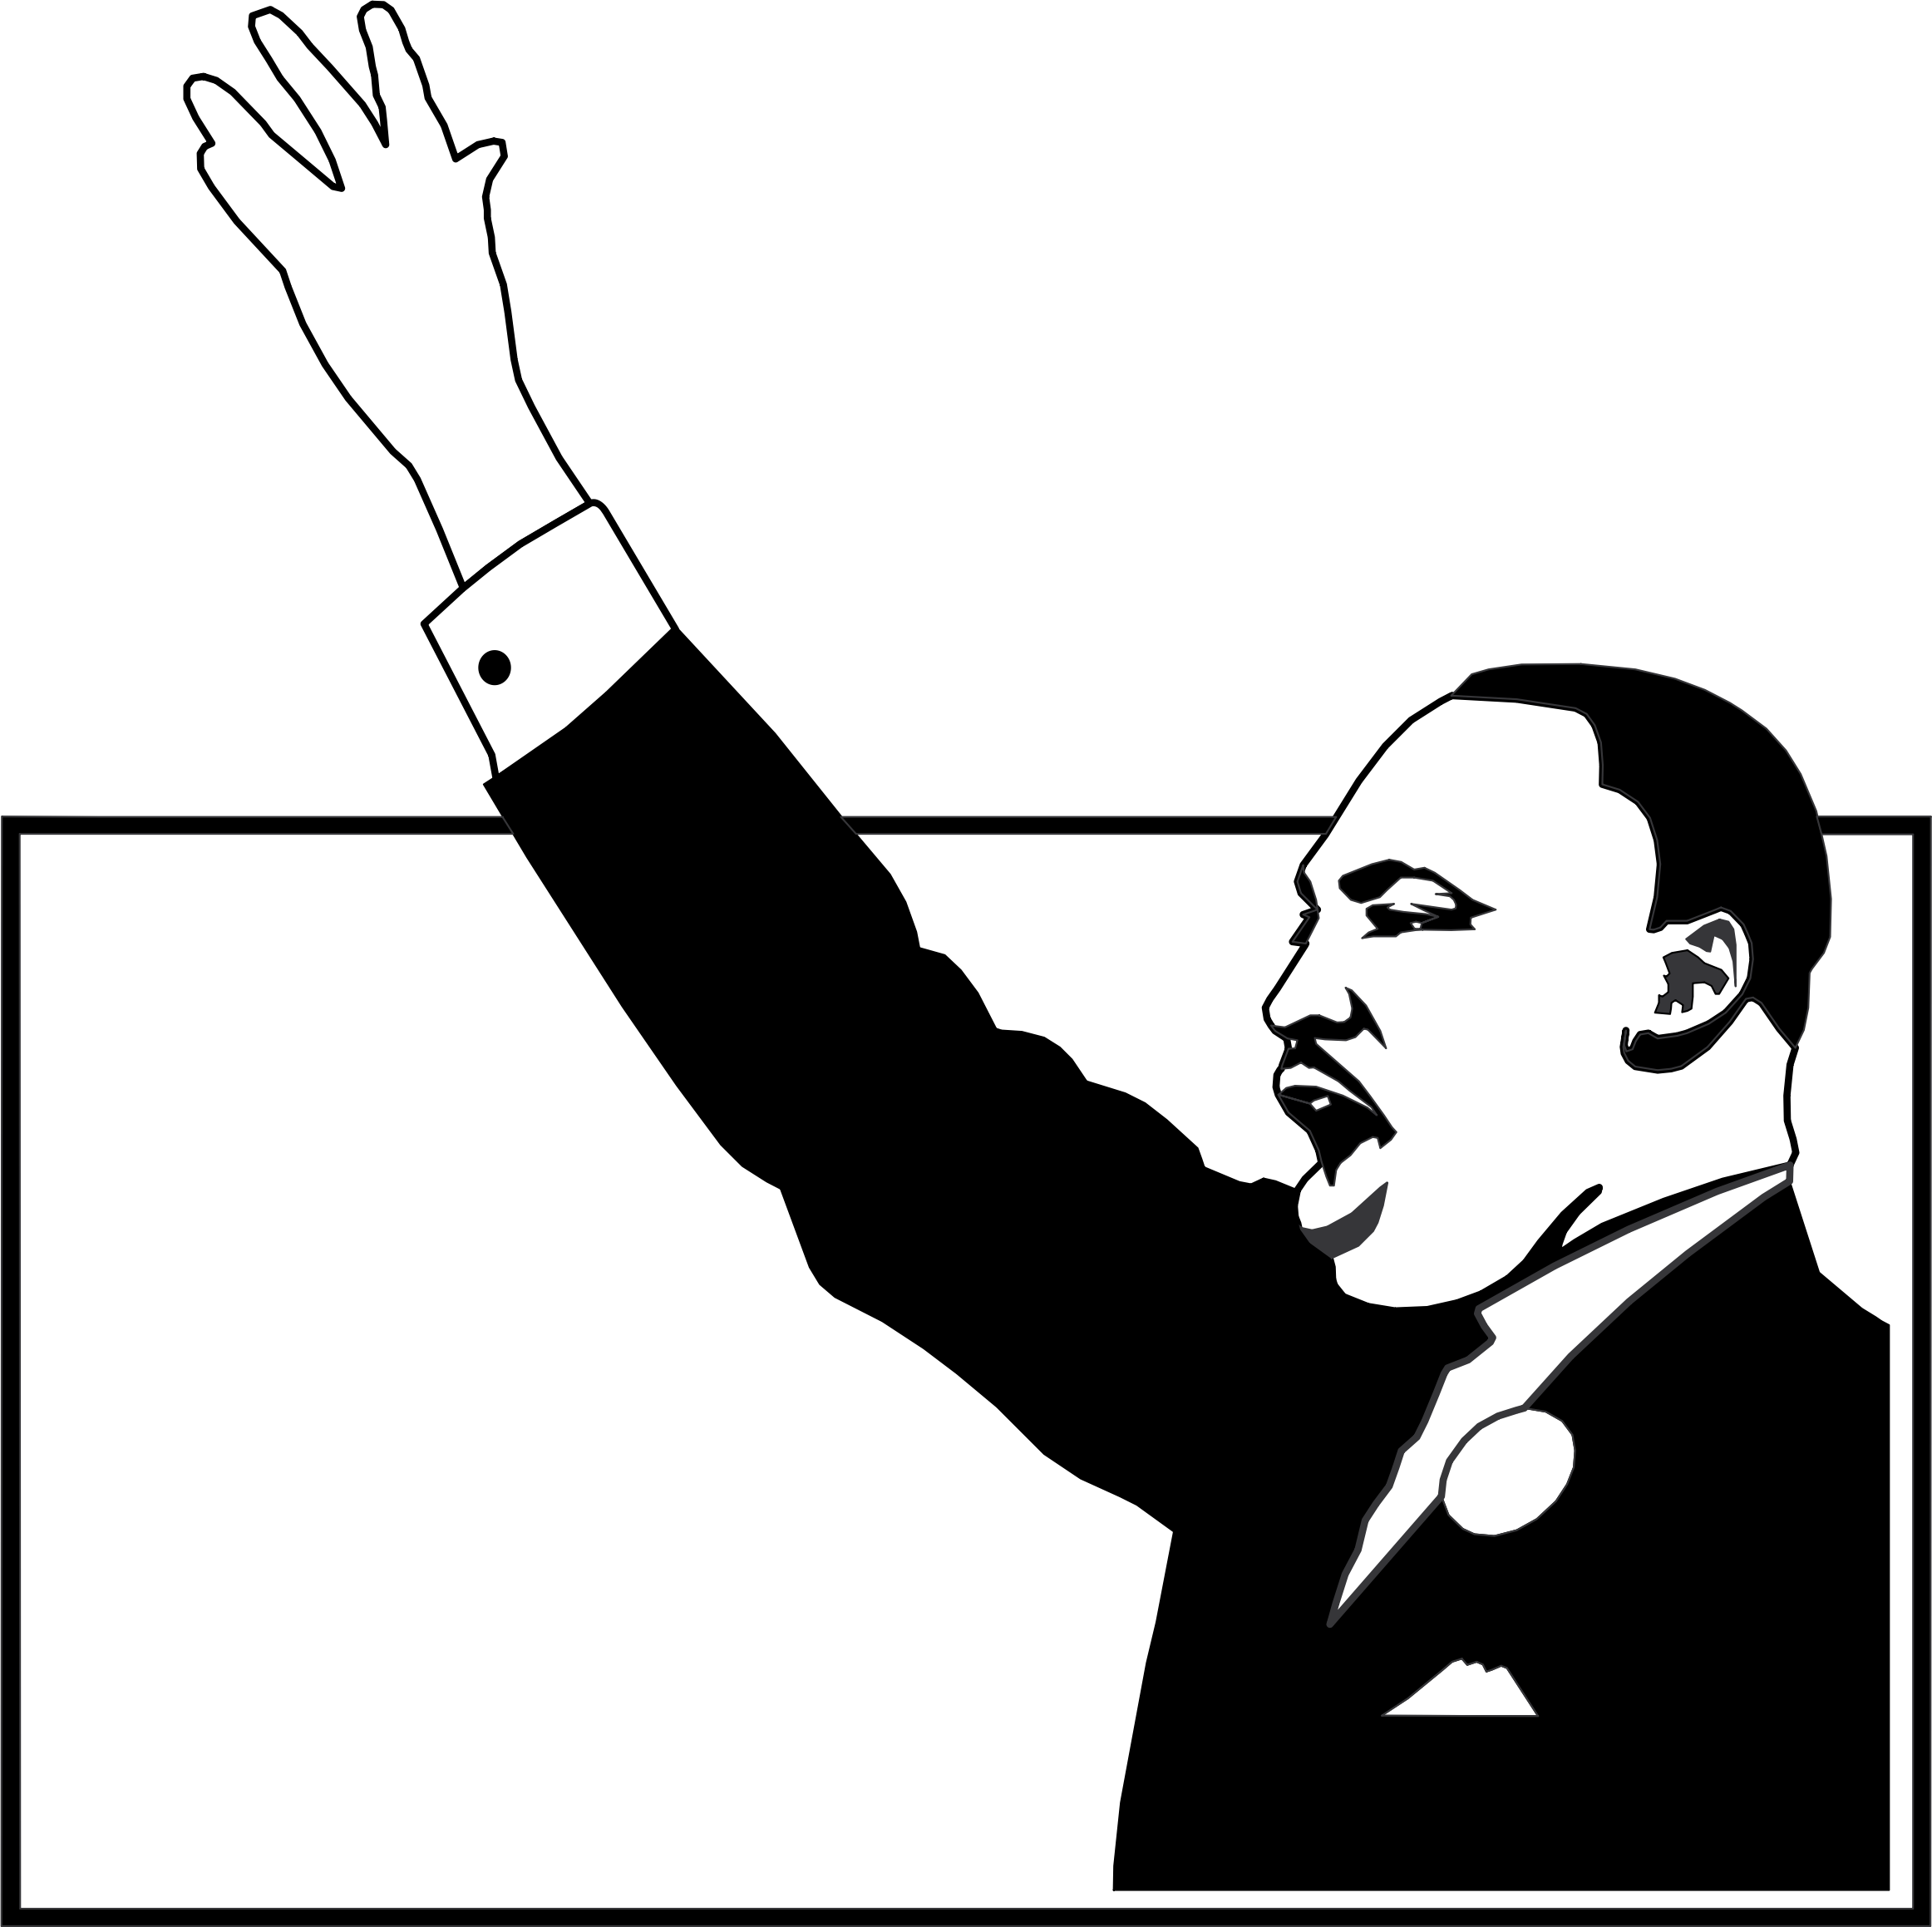 freeuse download Mlk clipart. Martin luther king big.